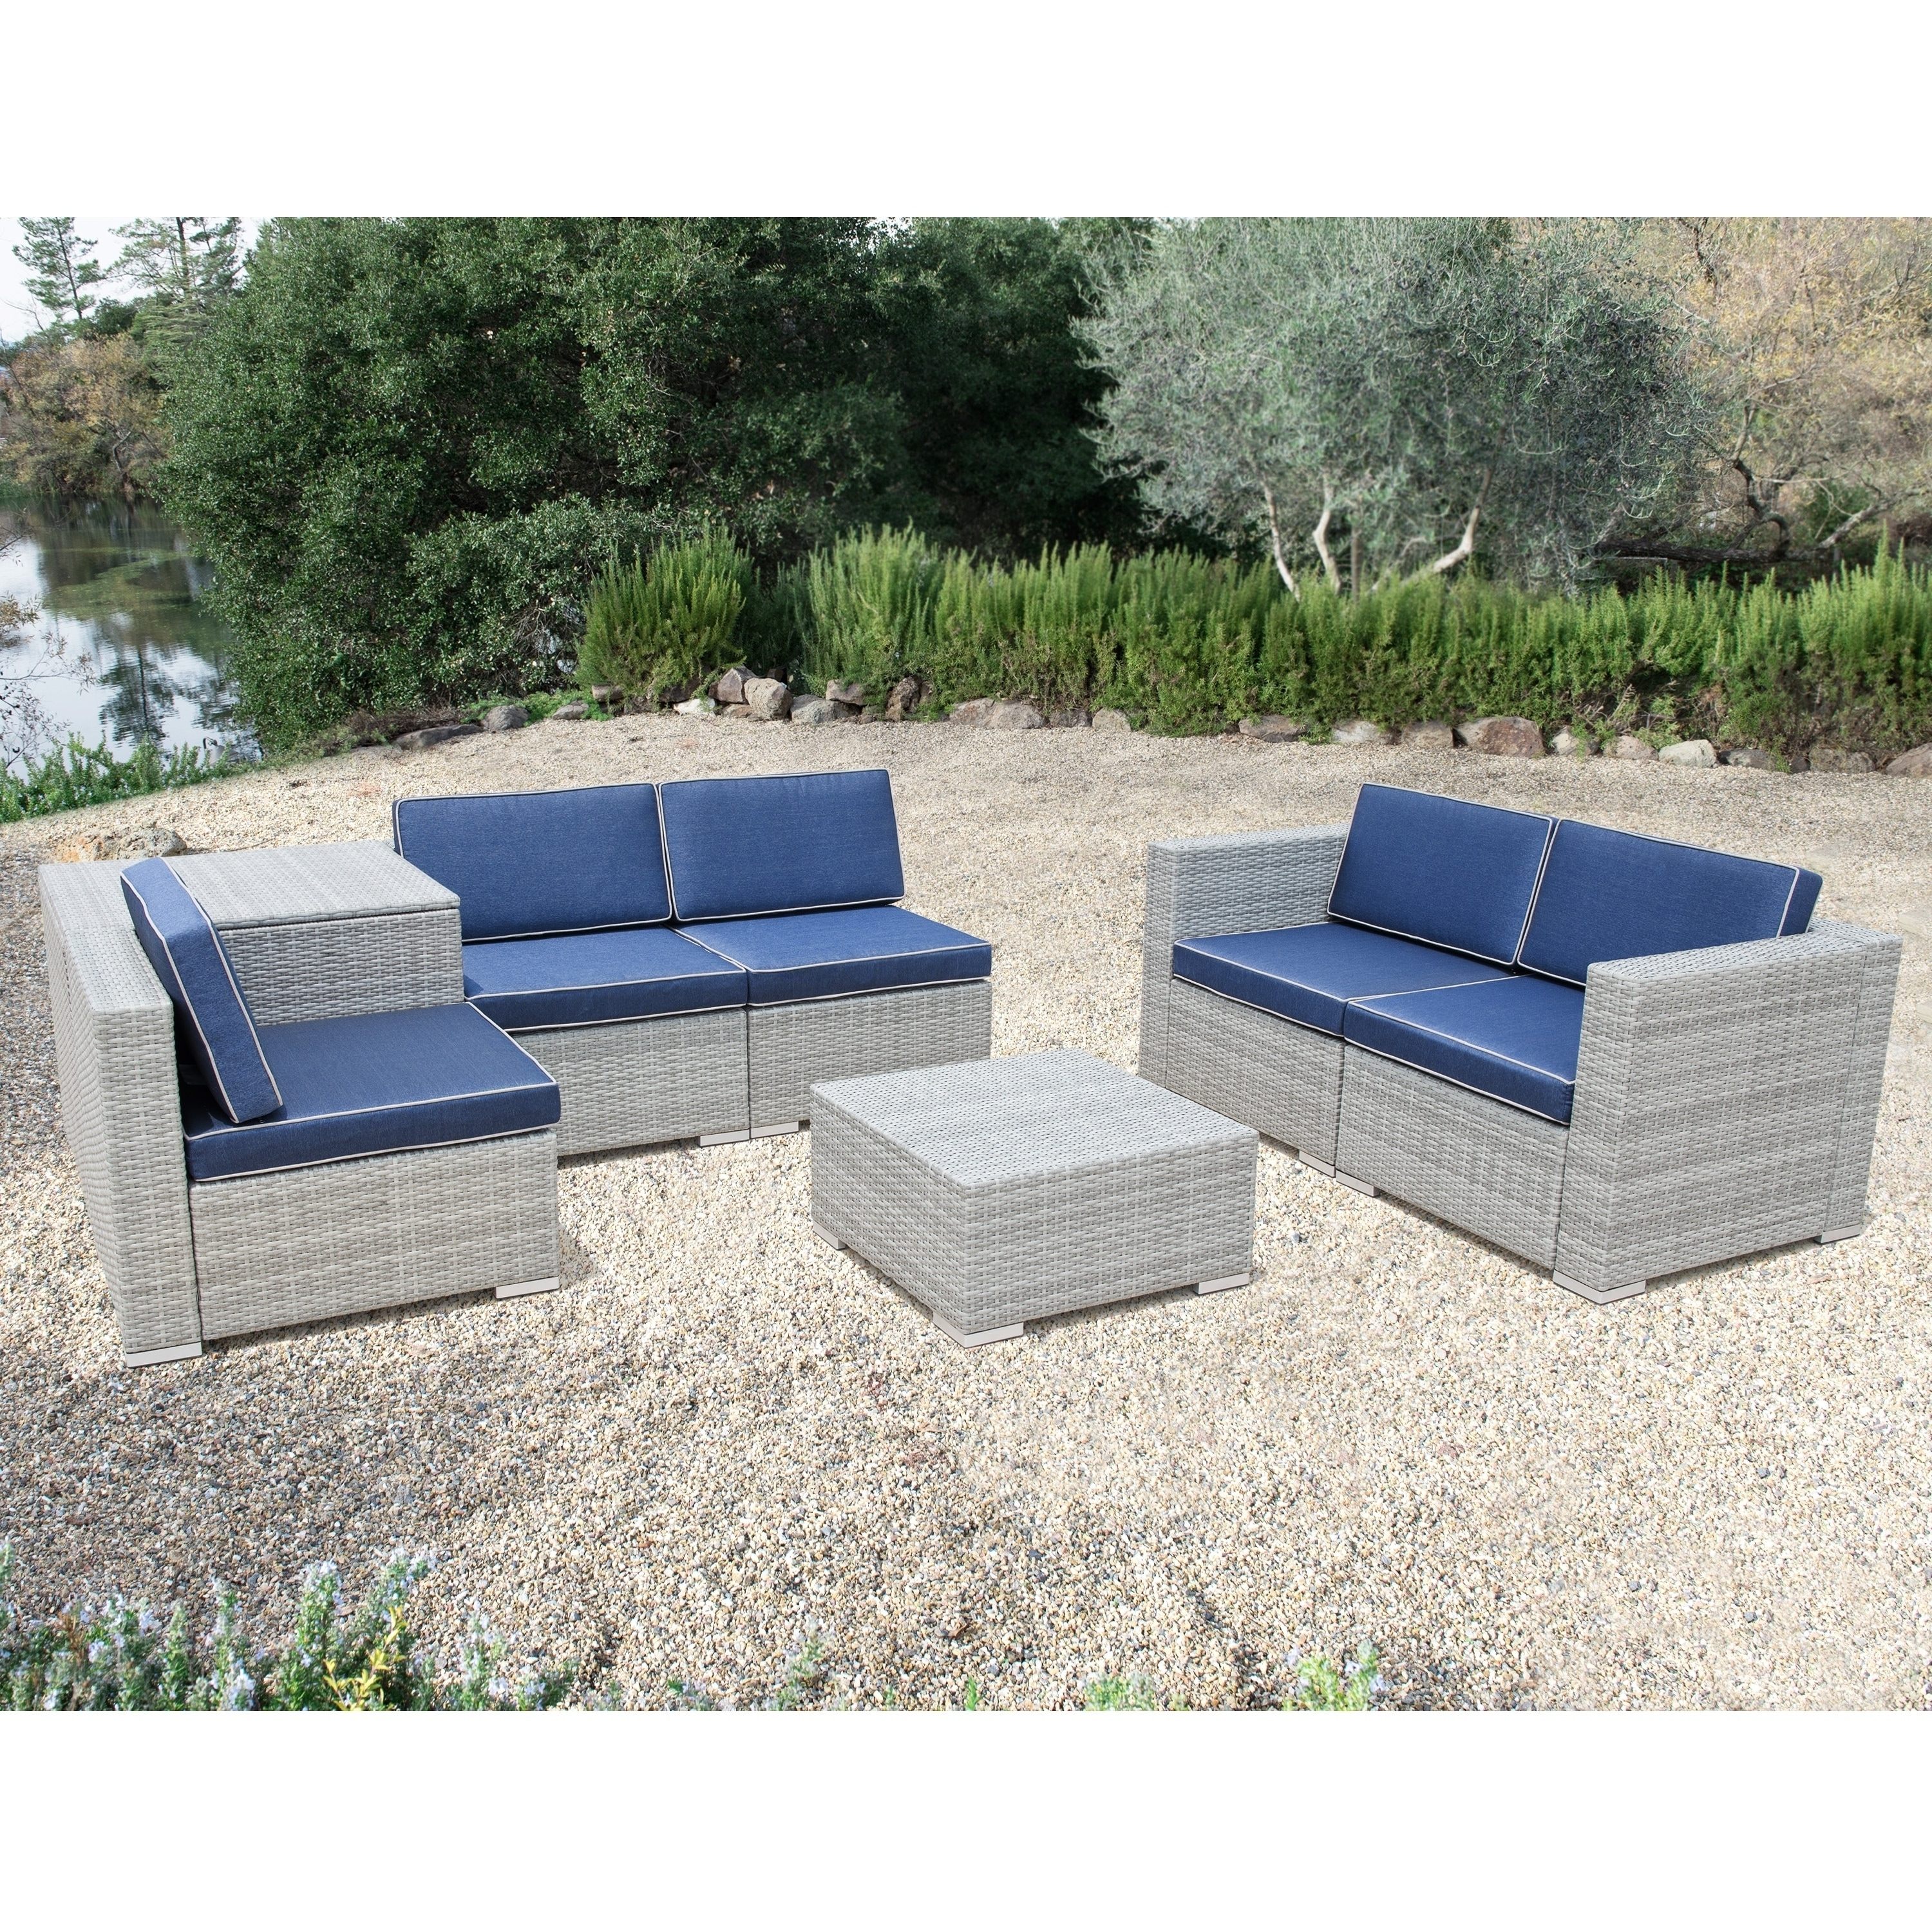 Popular Shop Corvus Bologna 7 Piece Grey Wicker Patio Furniture Set With Intended For Patio Conversation Sets With Storage (View 12 of 15)